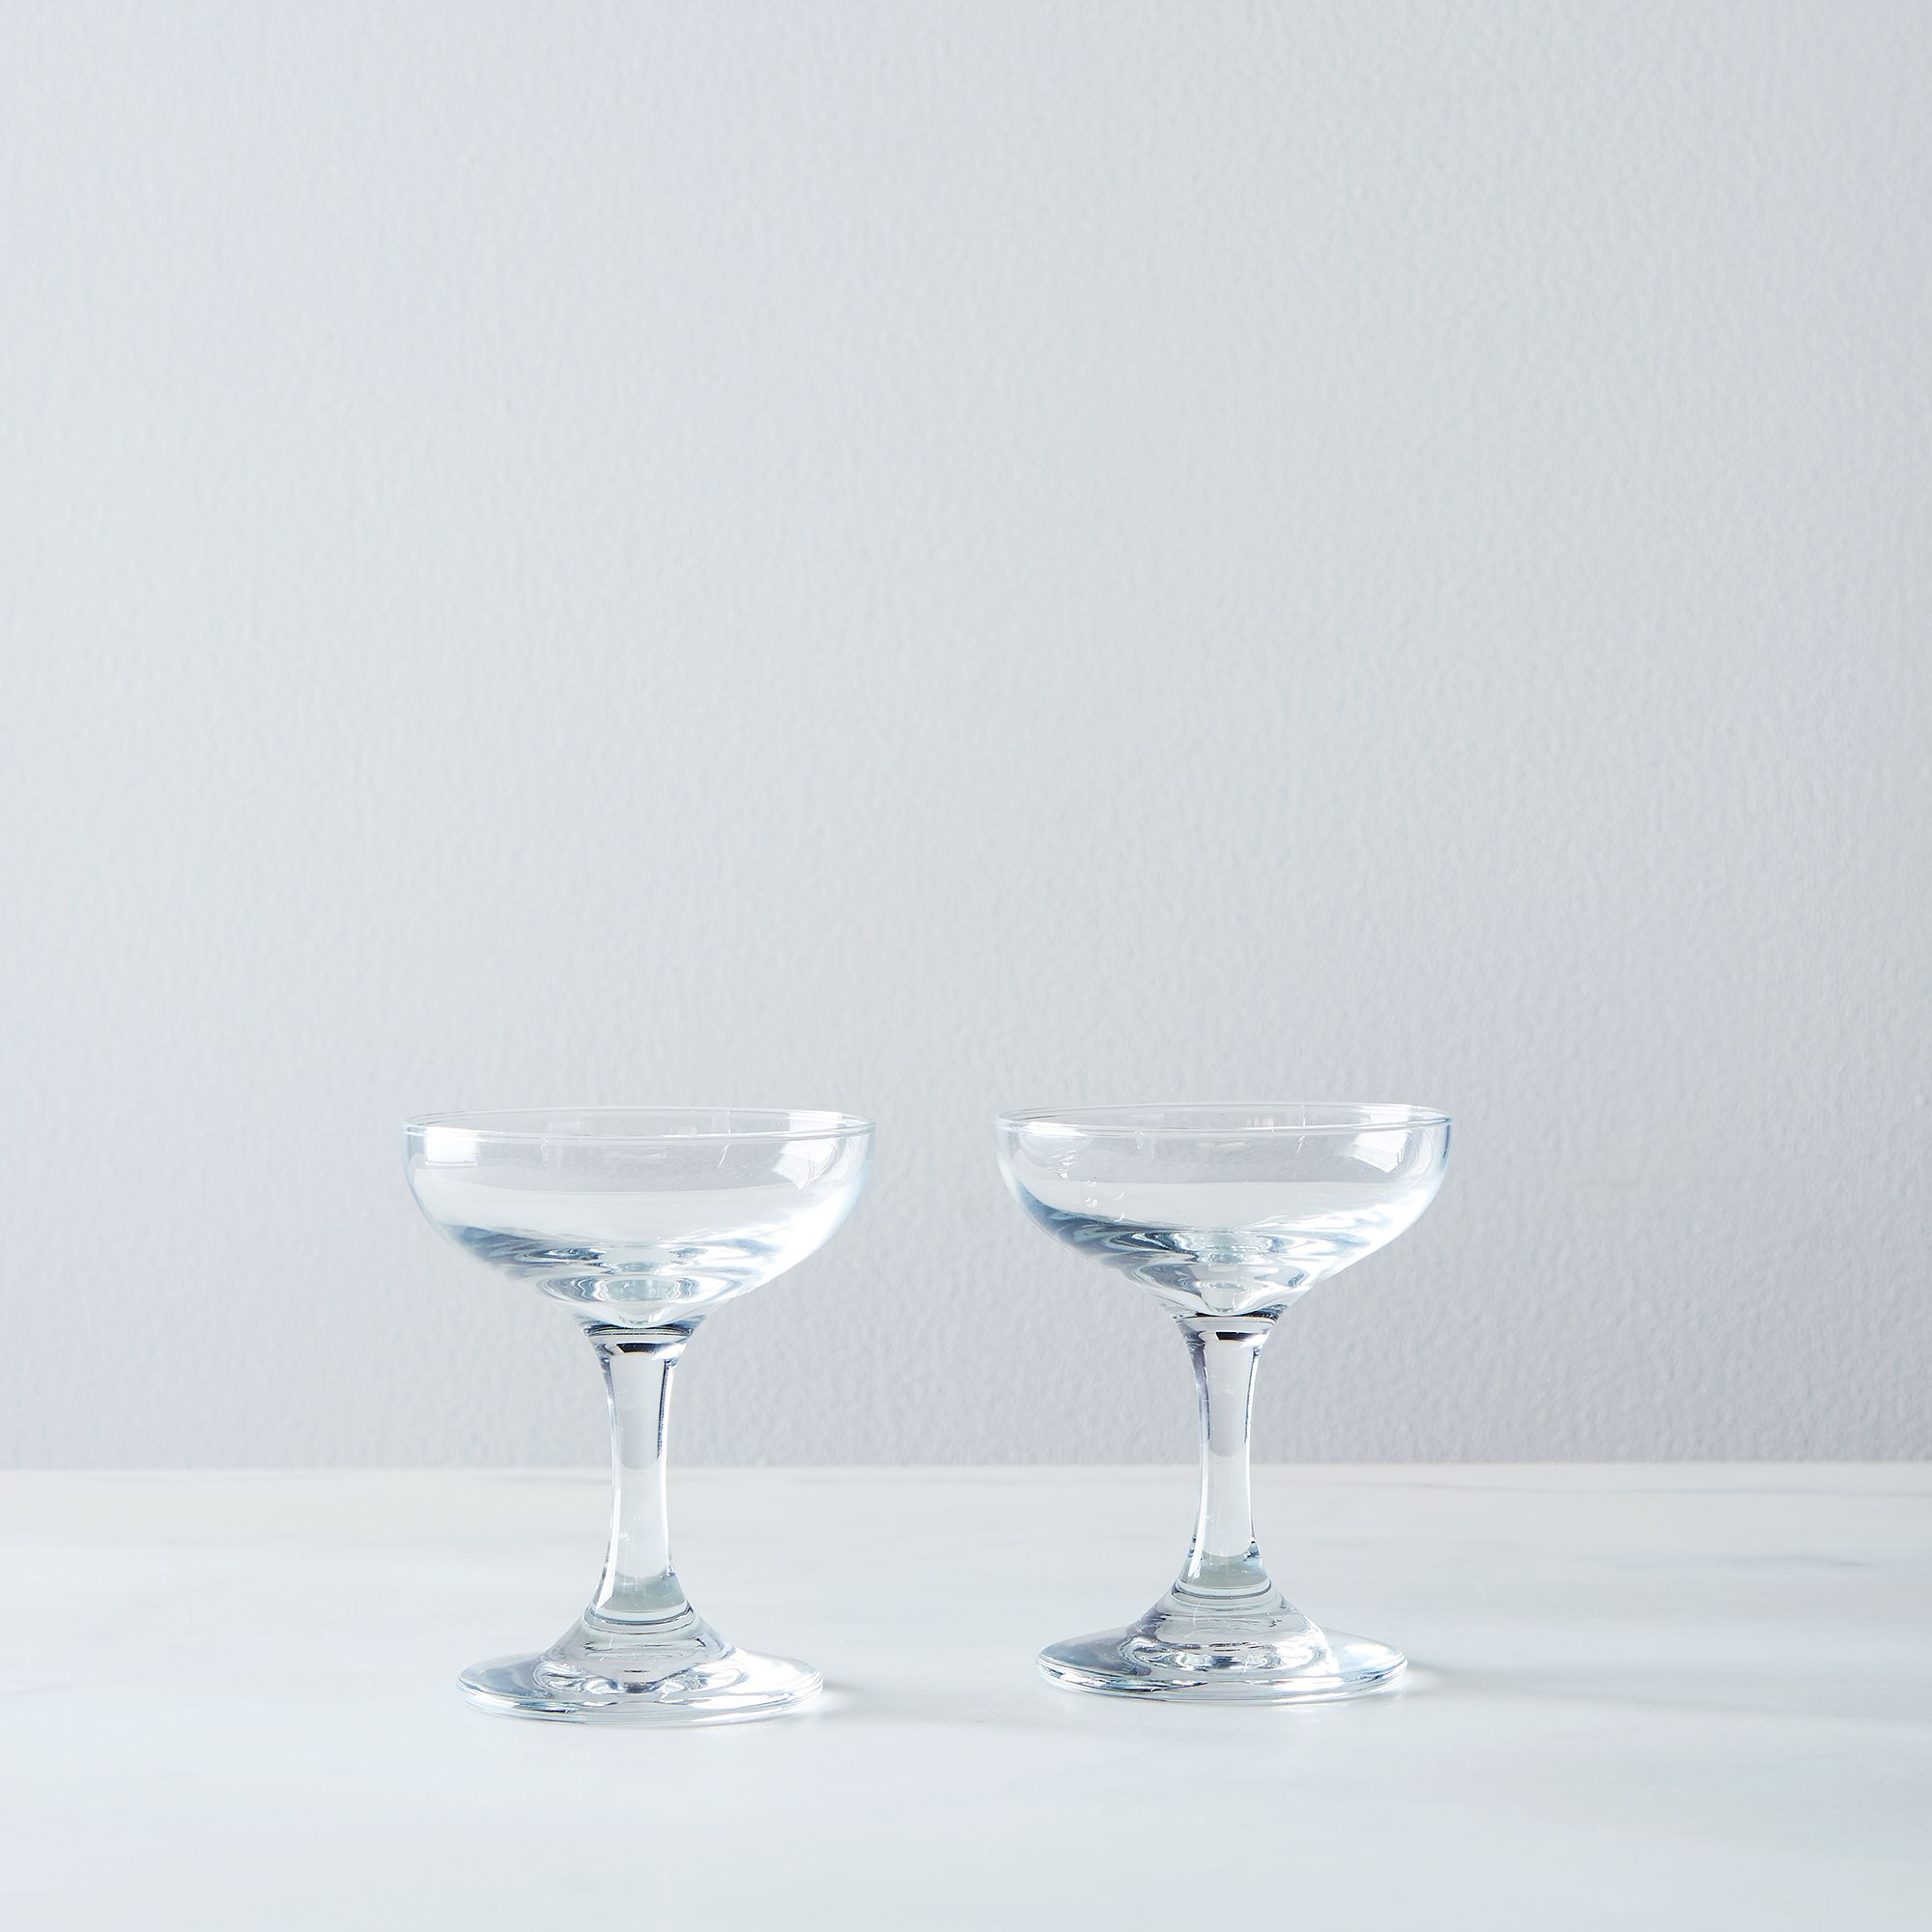 Ba1a5a72-def9-4711-a0ce-b4b35cccdd7b--2015-0619_w-p-design_cocktail-and-champagne-coupe_silo_bobbi-lin_3241